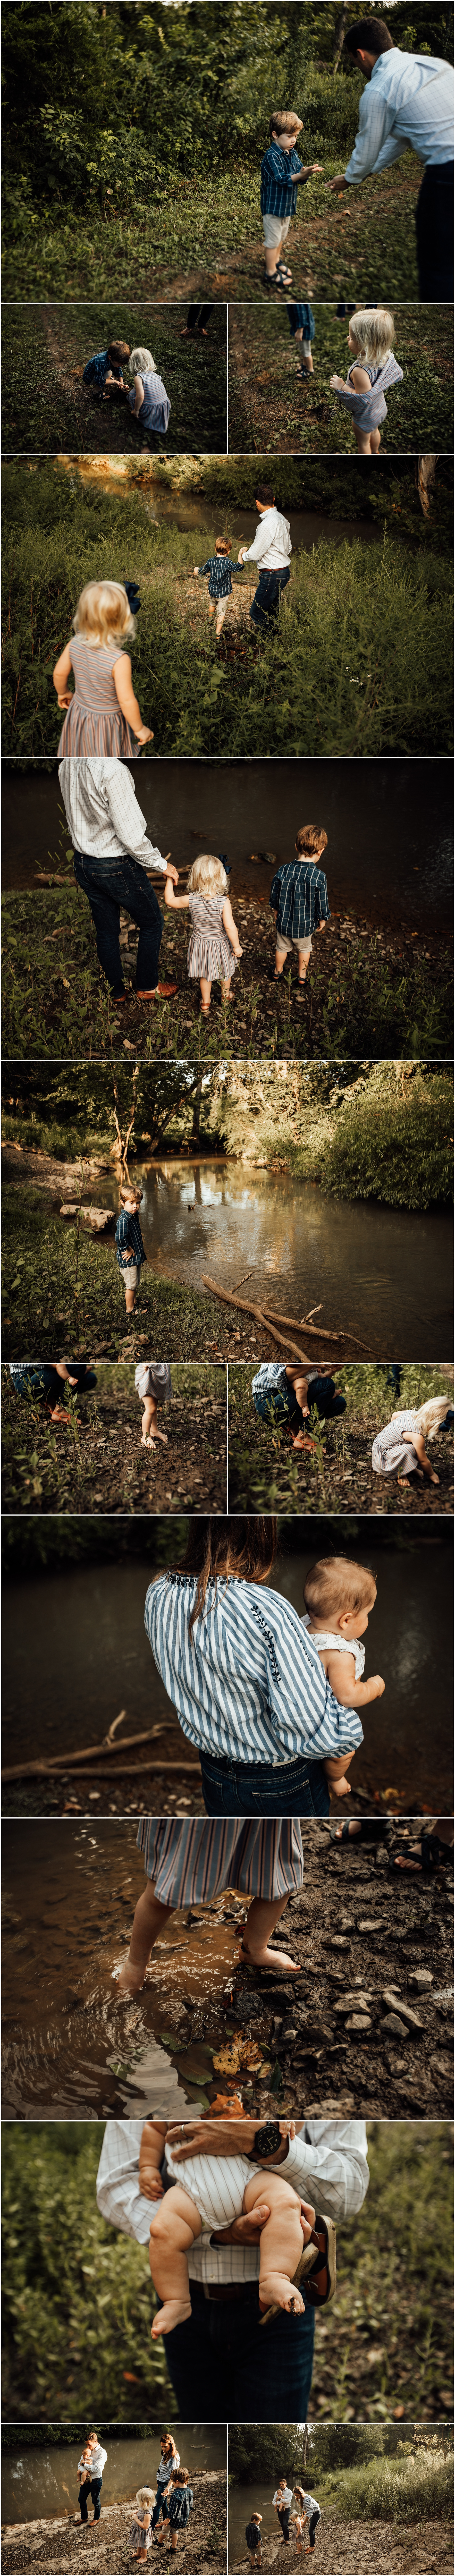 Madison Alabama family of 5 outdoor creek session by Rachel K Photo